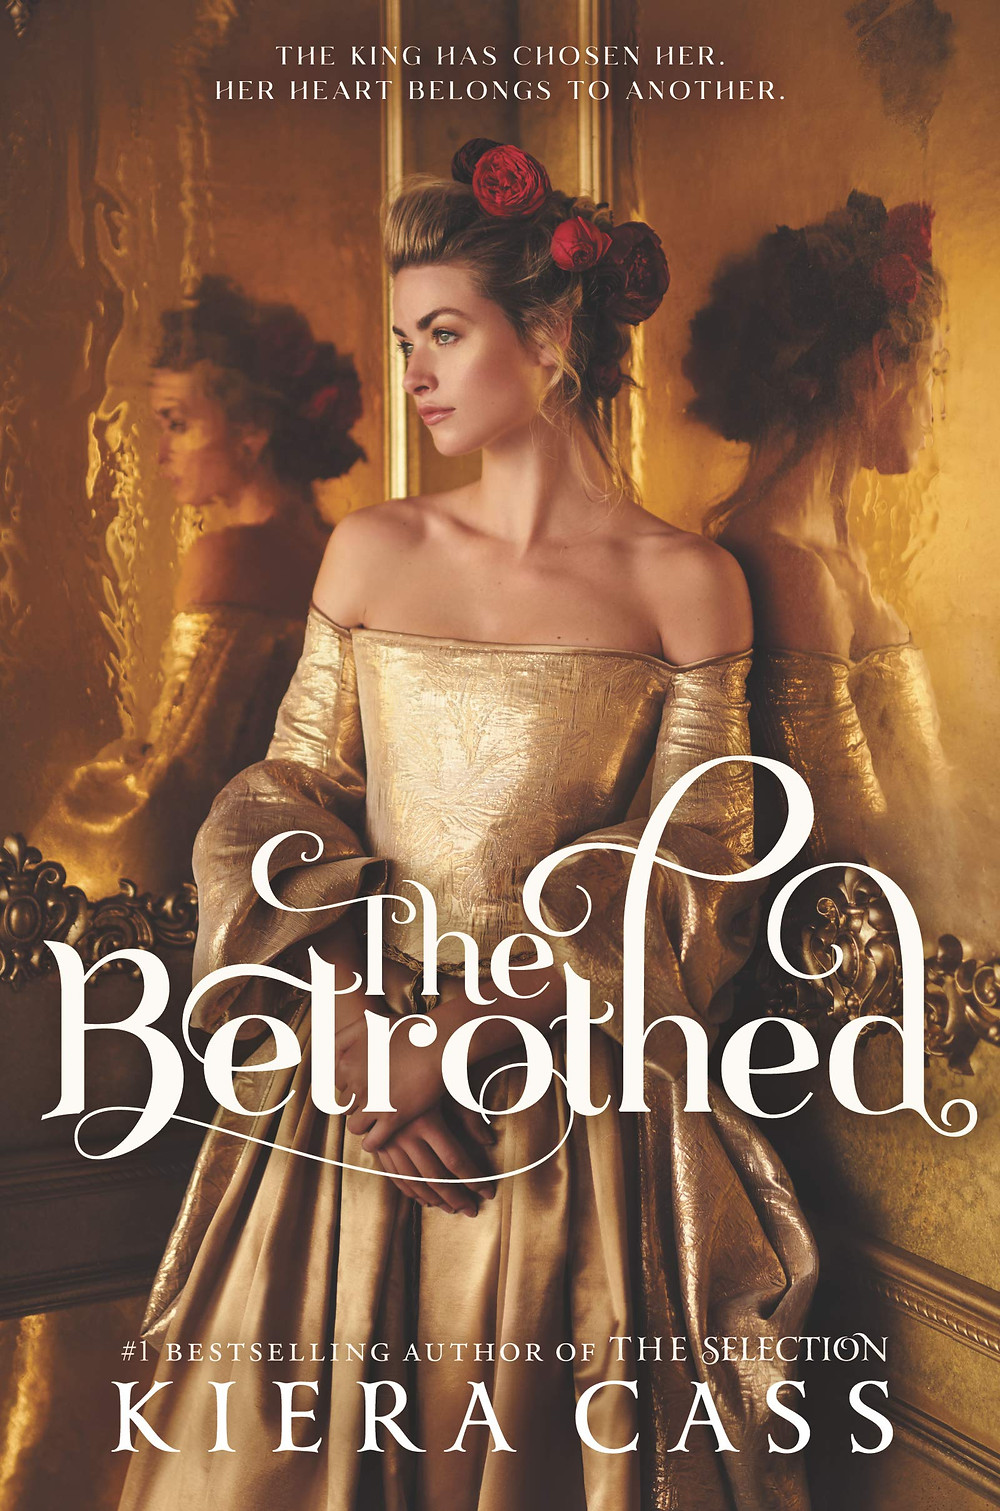 The Betrothed book cover.